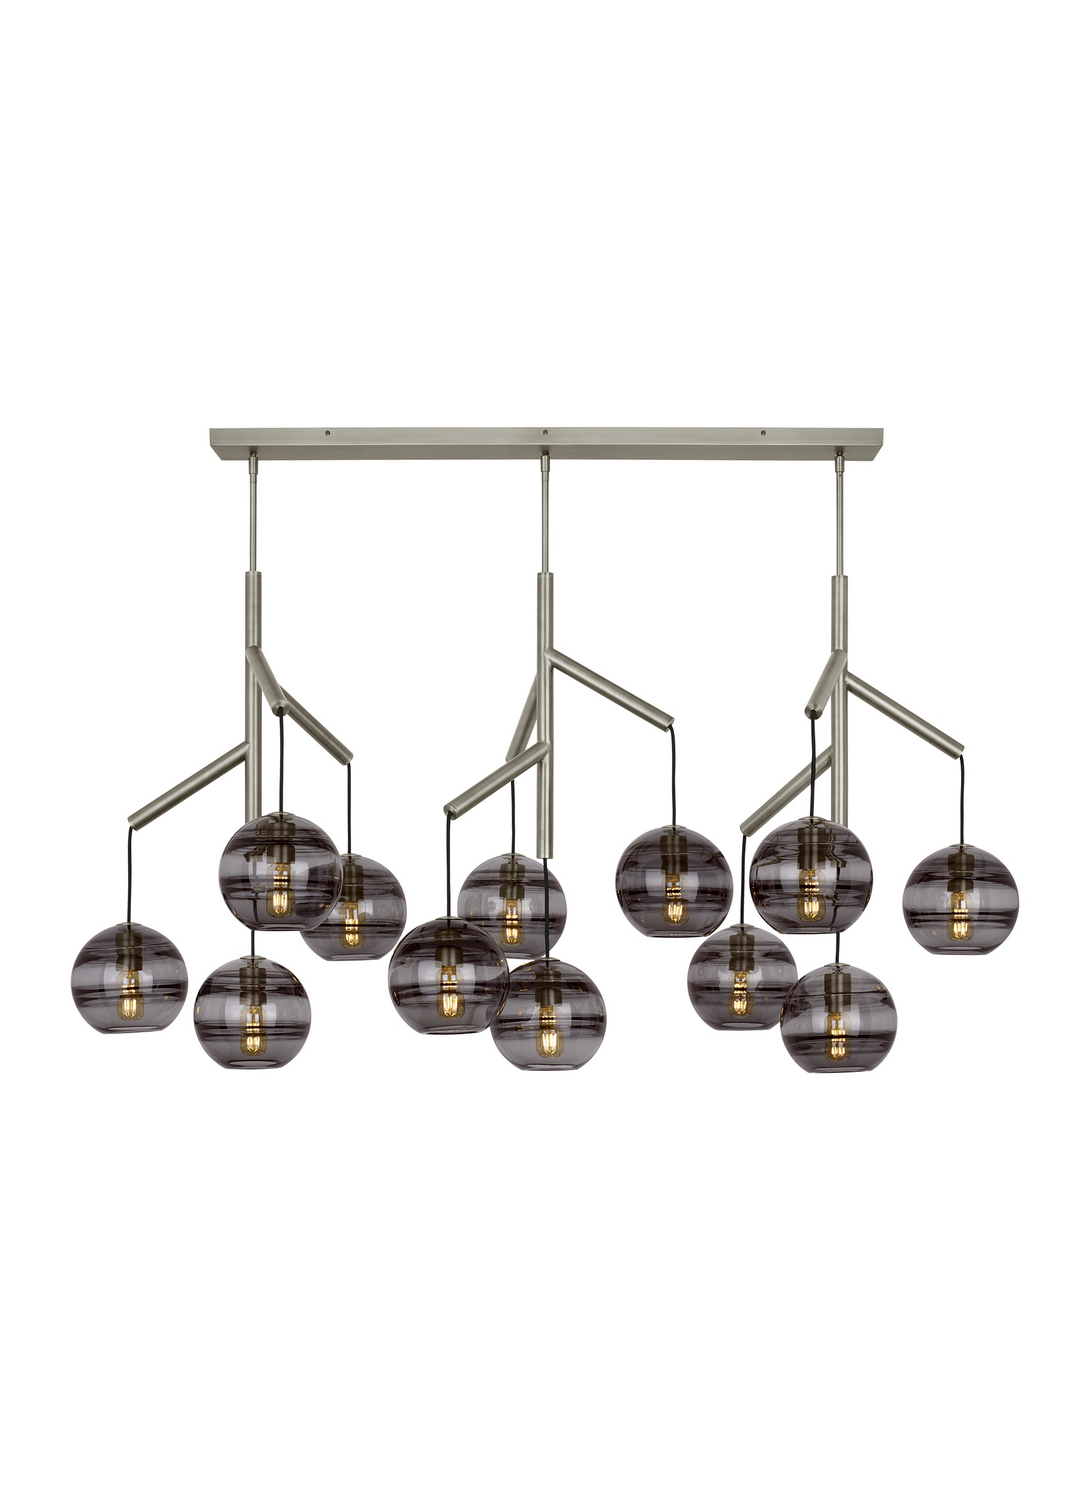 Chandelier from the Sedona collection by Tech Lighting 700SDNMPL3KS